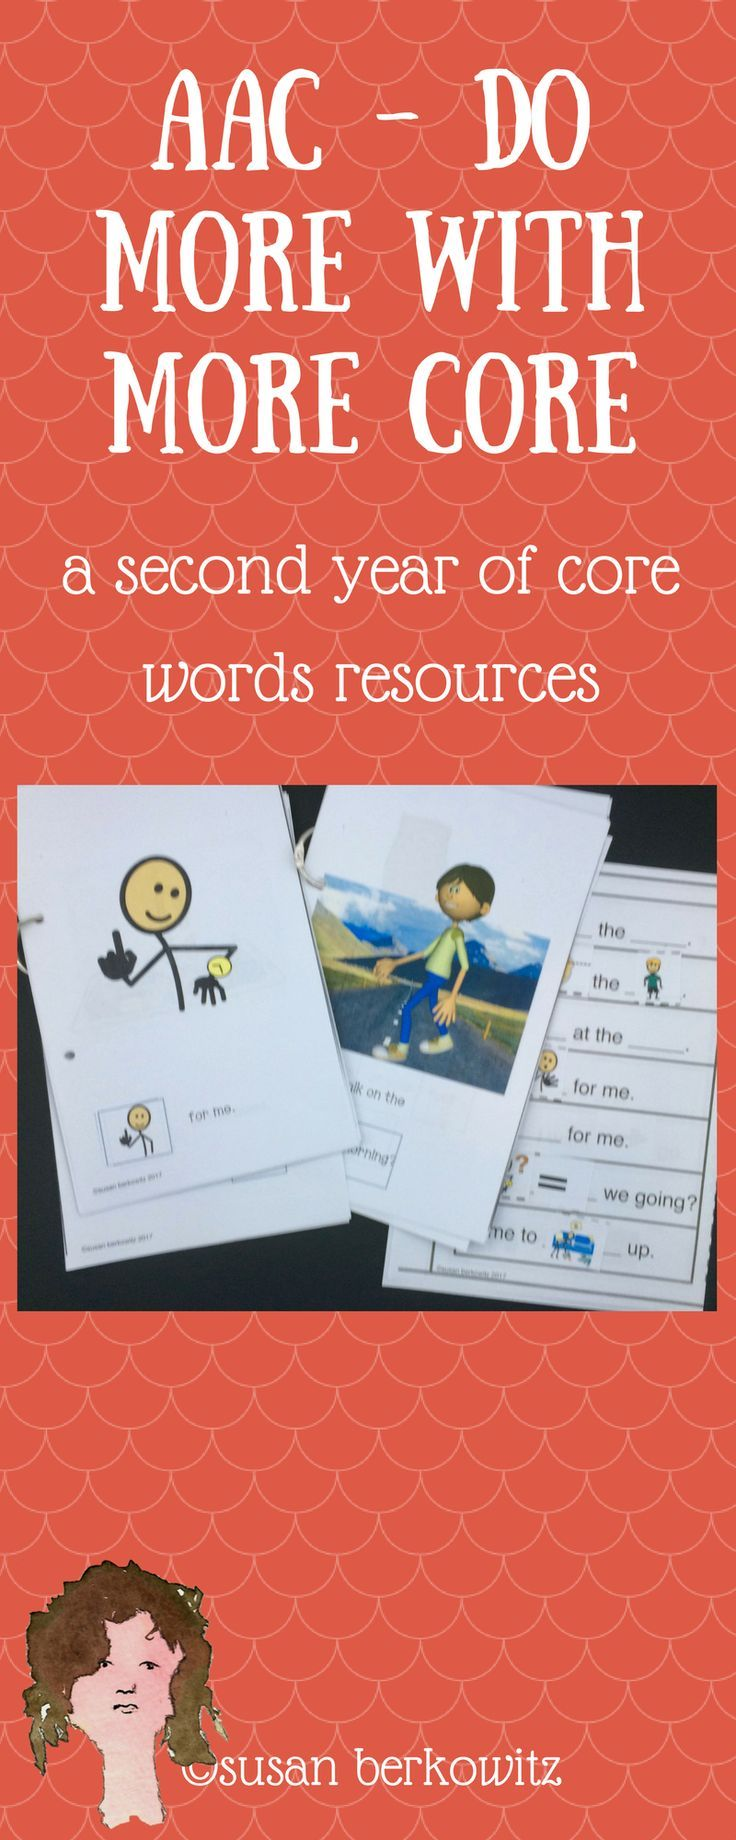 Keep AAC users learning more language skills with a second year of core words (those used by PrAACticalAAC.org). Interactive activities help promote learning.